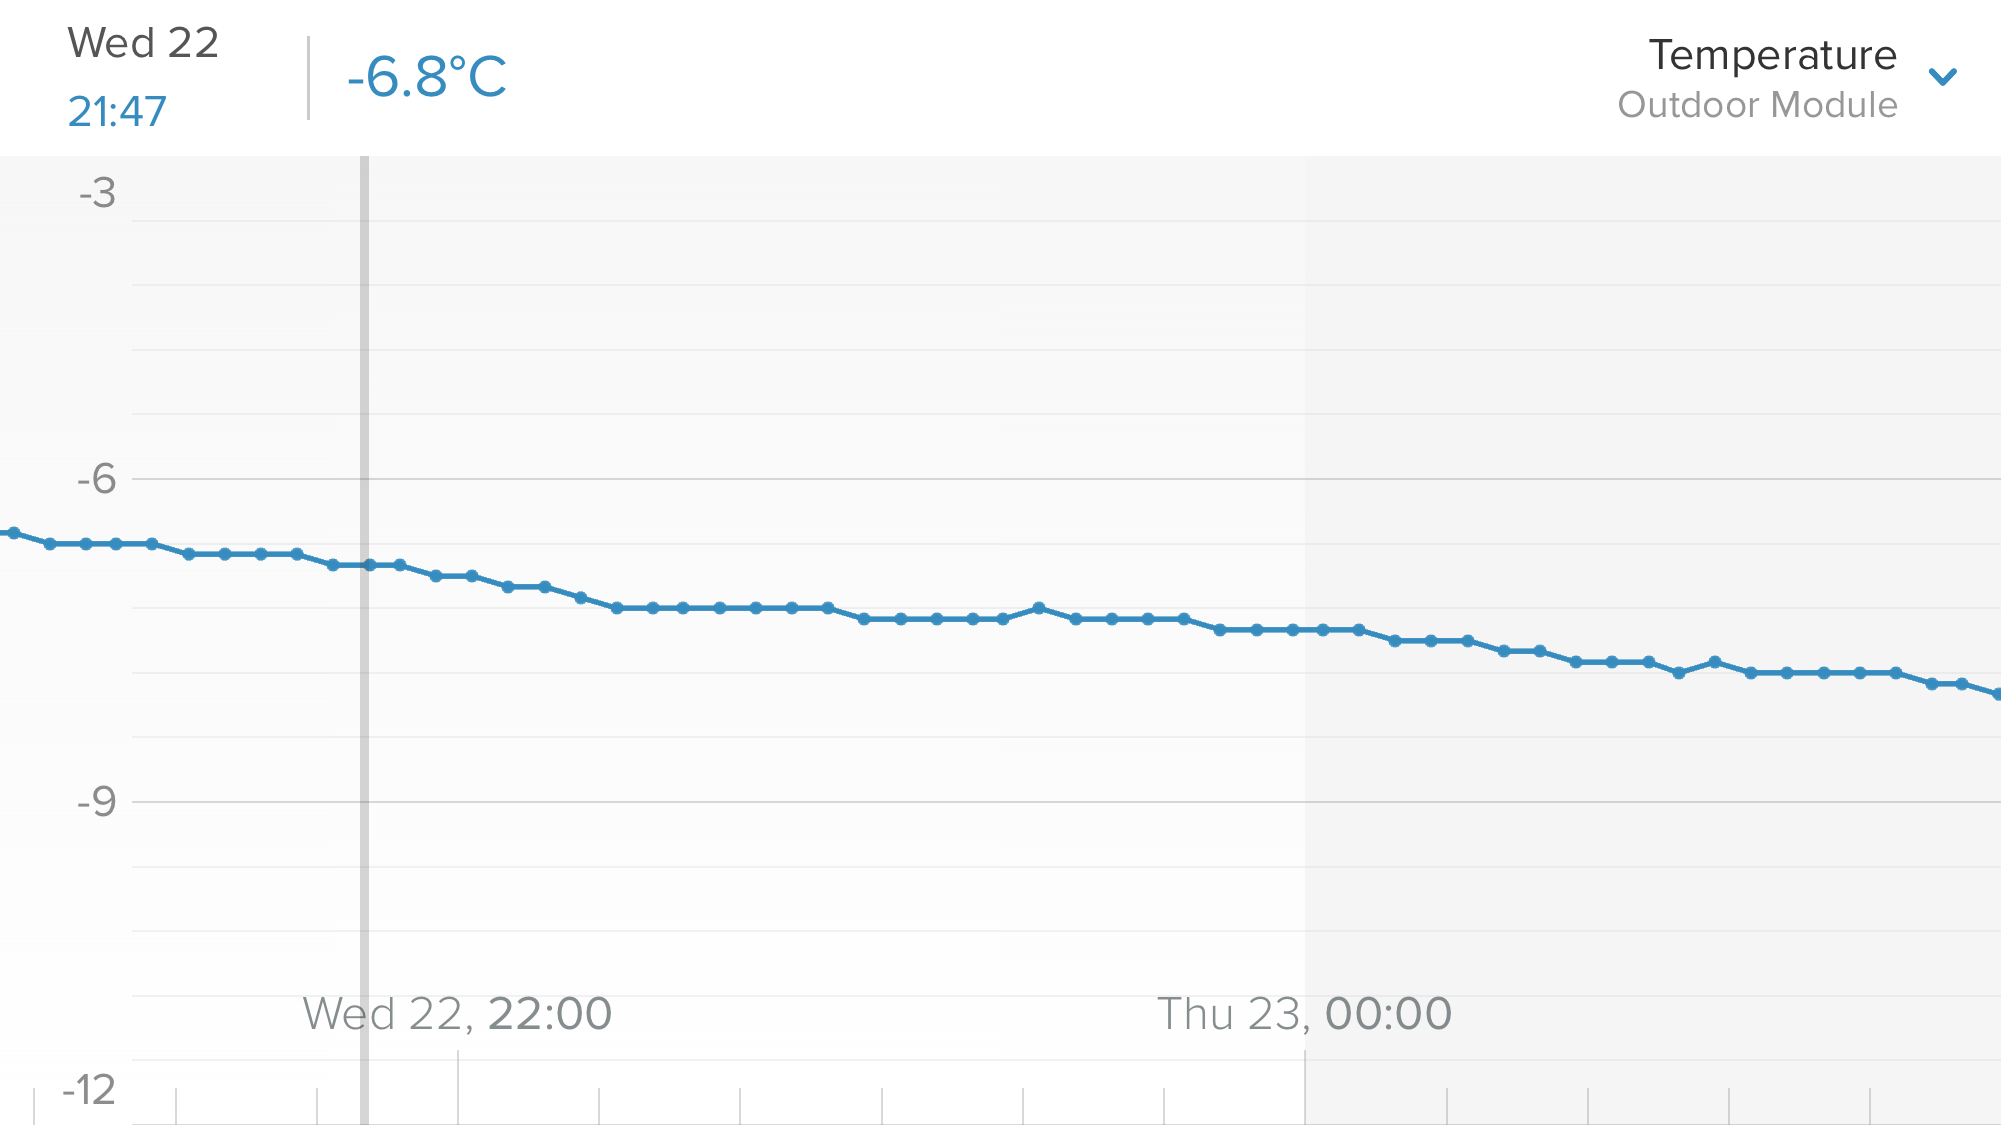 Outdoor temperature over the same 4 hours last night